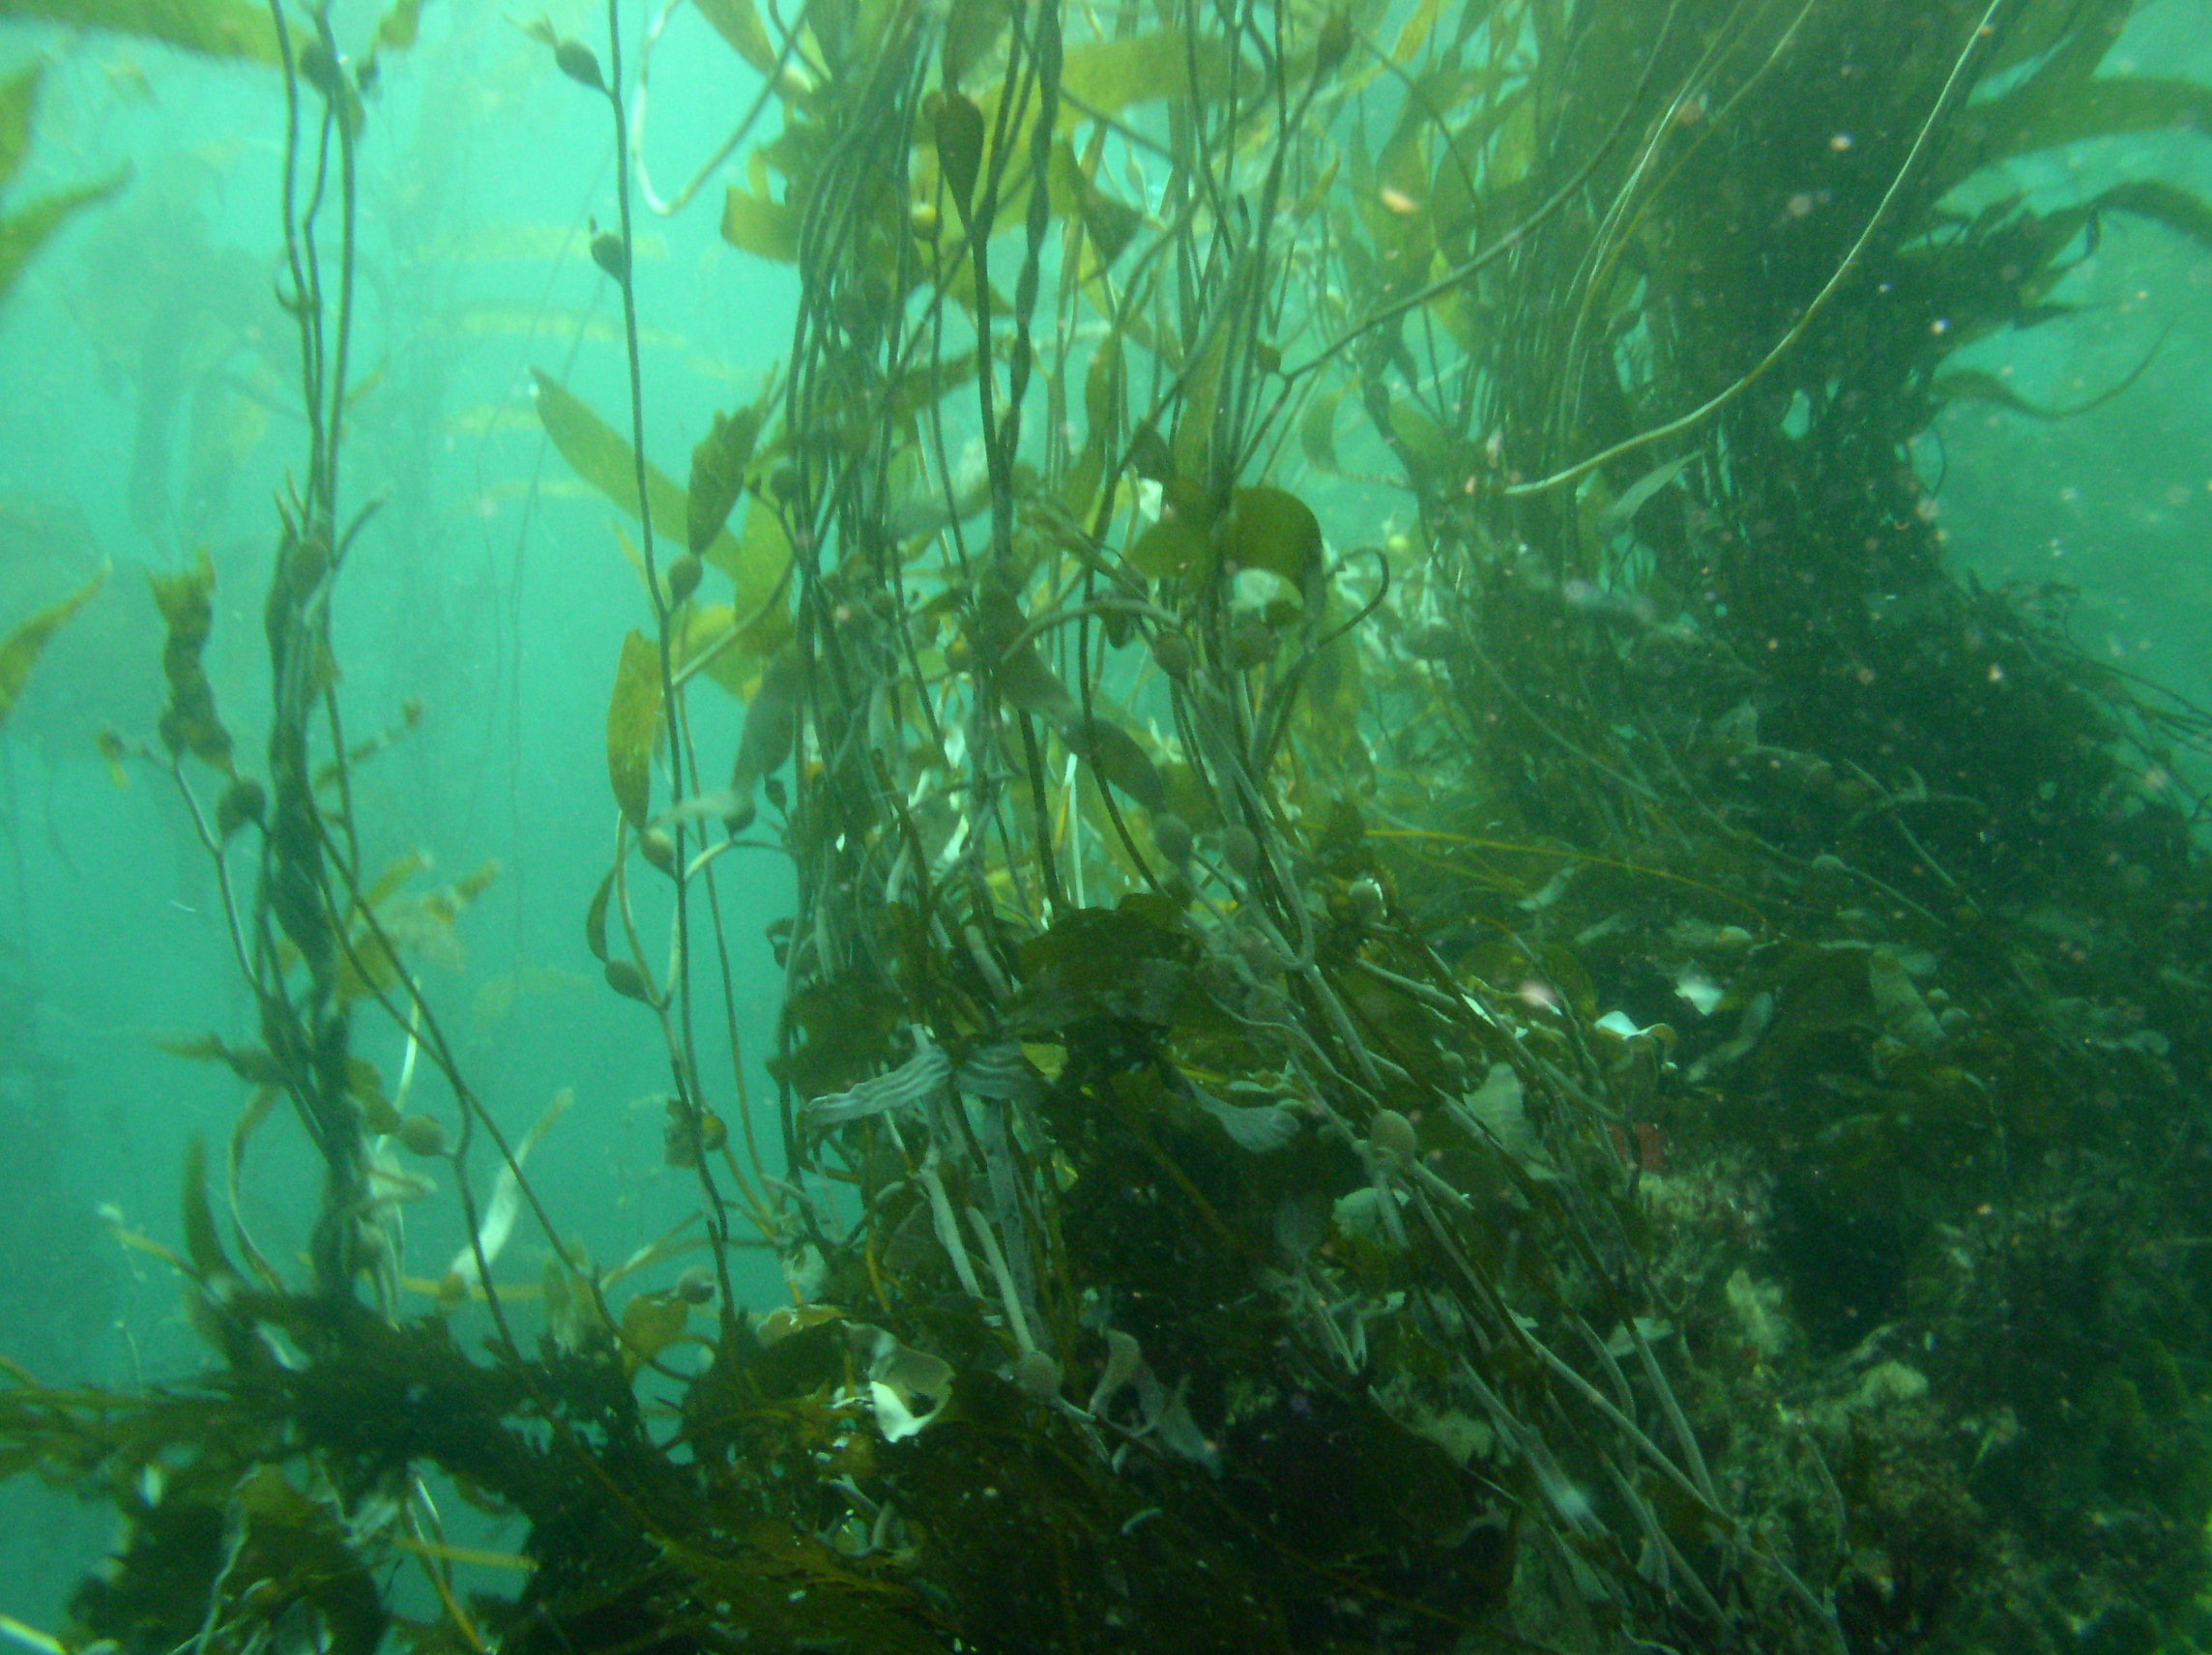 KELP FOREST ECOLOGY - Our work on fishery management and resilience are complemented by my other research on dynamics of nearshore ecosystems. In particular we study giant kelp population dynamics and net primary productivity, global patterns of kelp response to climate change, and mechanisms underlying abrupt state changes in temperate reef systems.